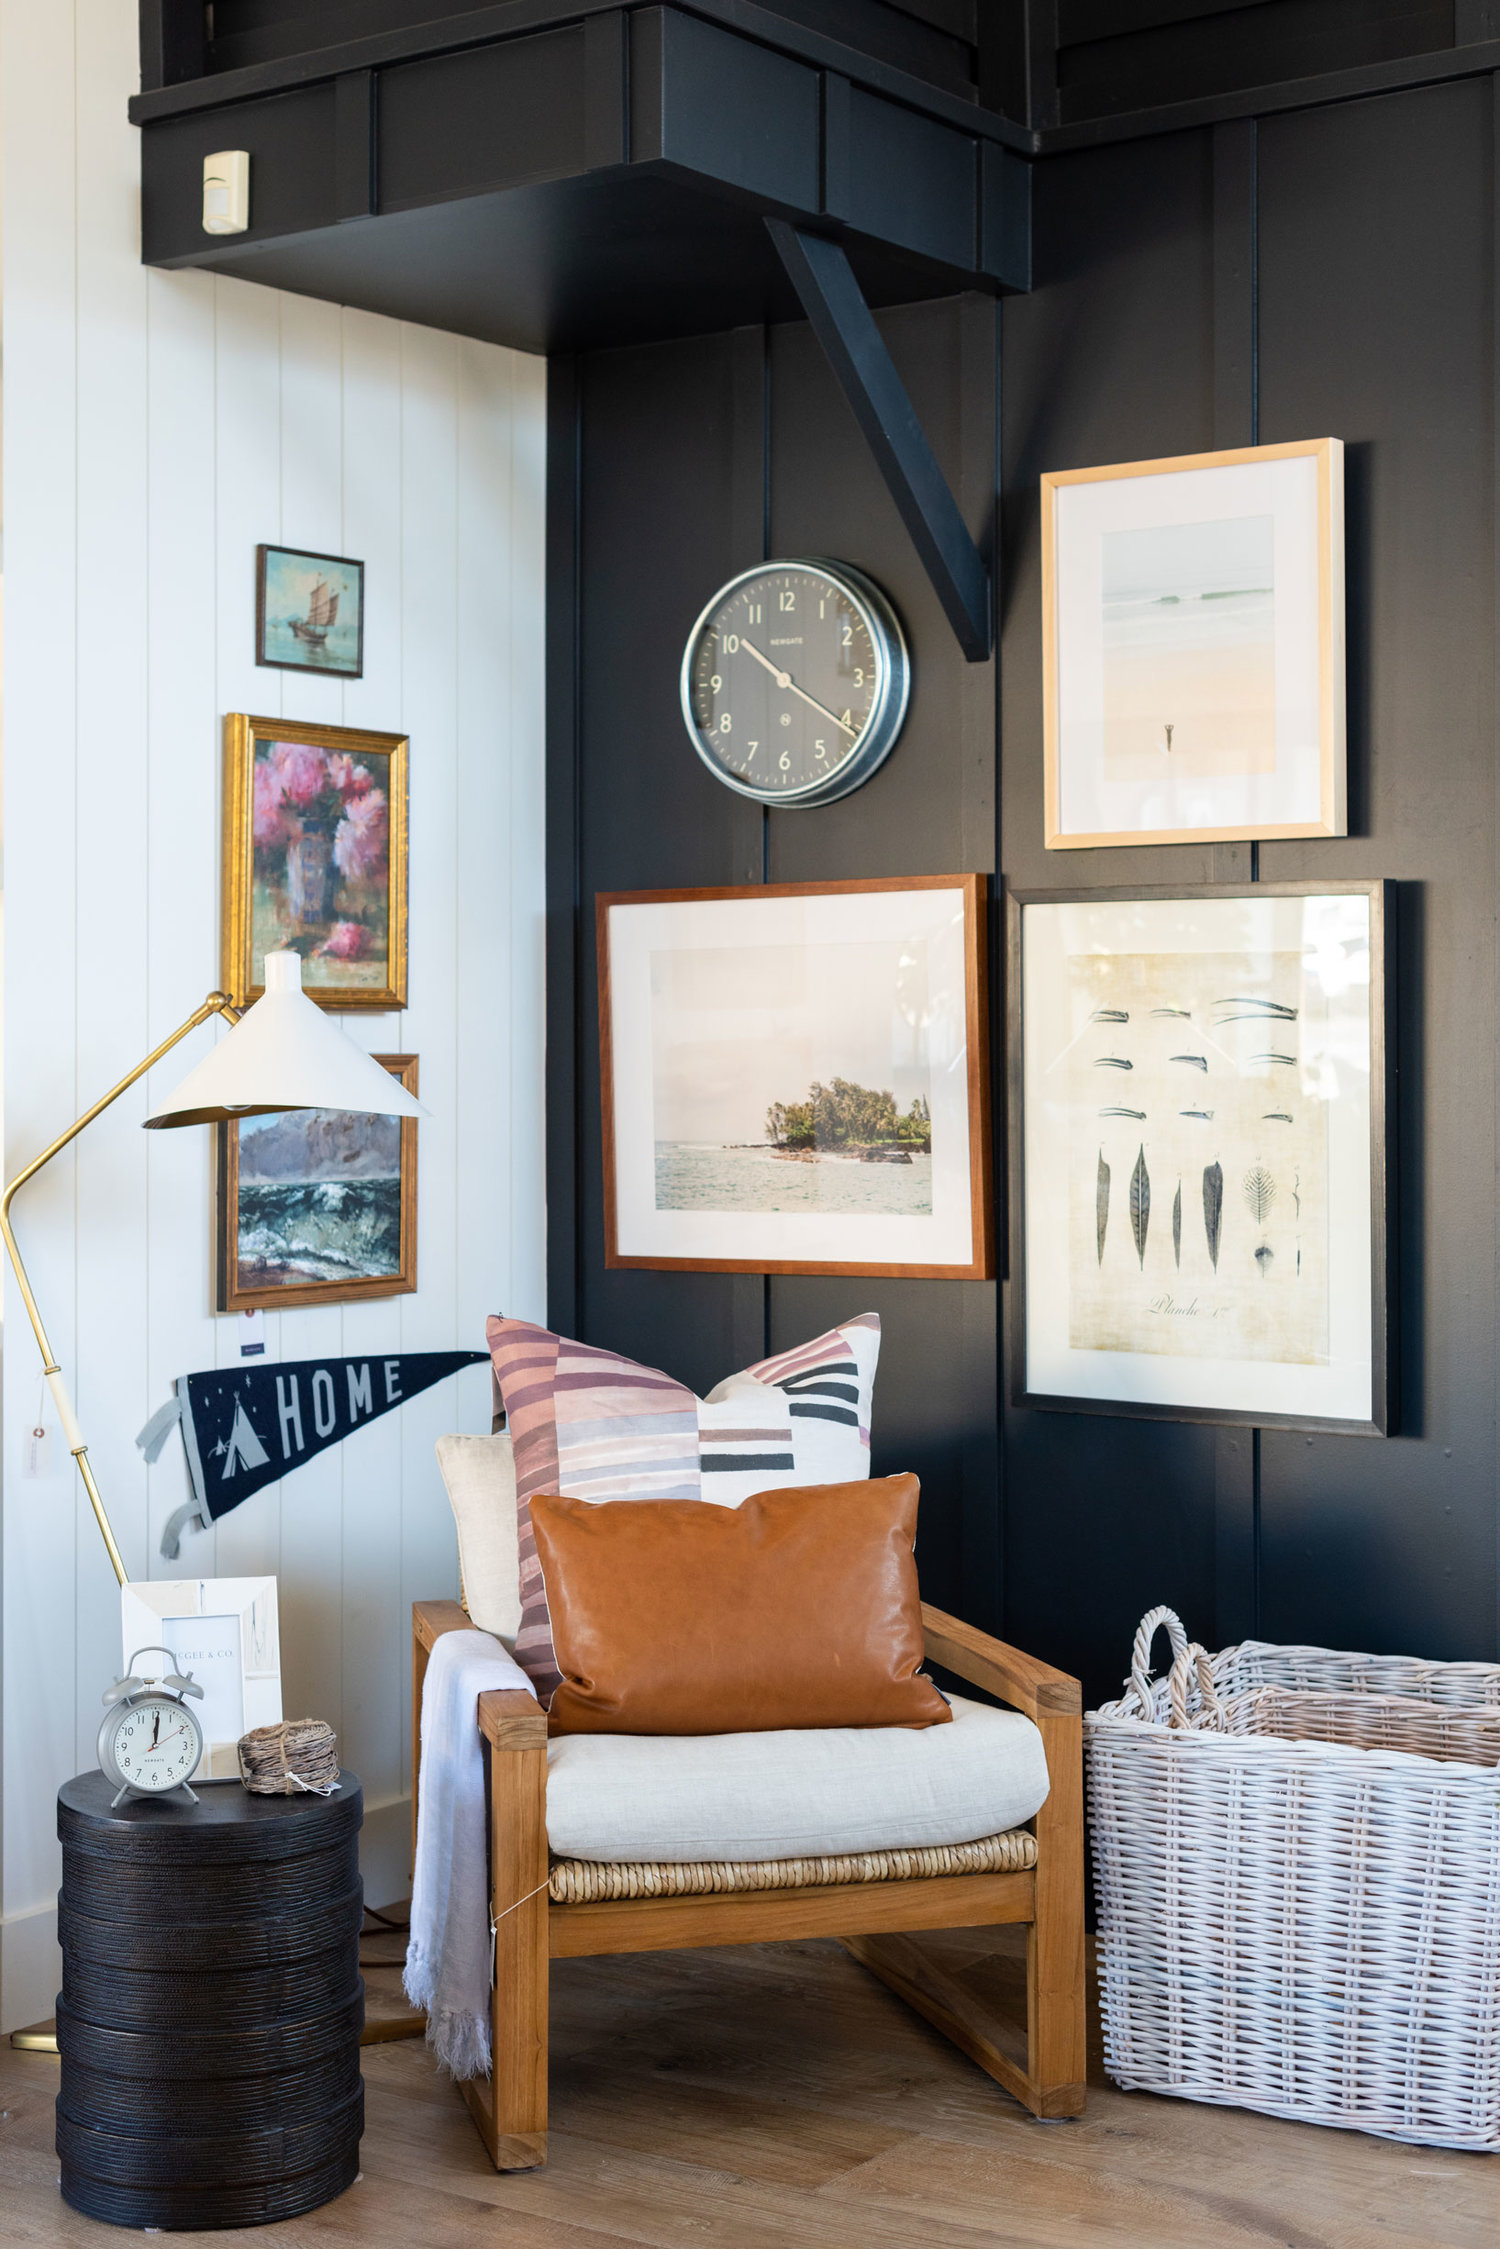 Cosette Chair   ,    SM pillows   ,    Harley Side Table   ,    New York Wall Clock   ,    Peonies & Vase   ,    La Vague   ,    Home Pennant   ,    Hana Photograph   ,    Surf Break